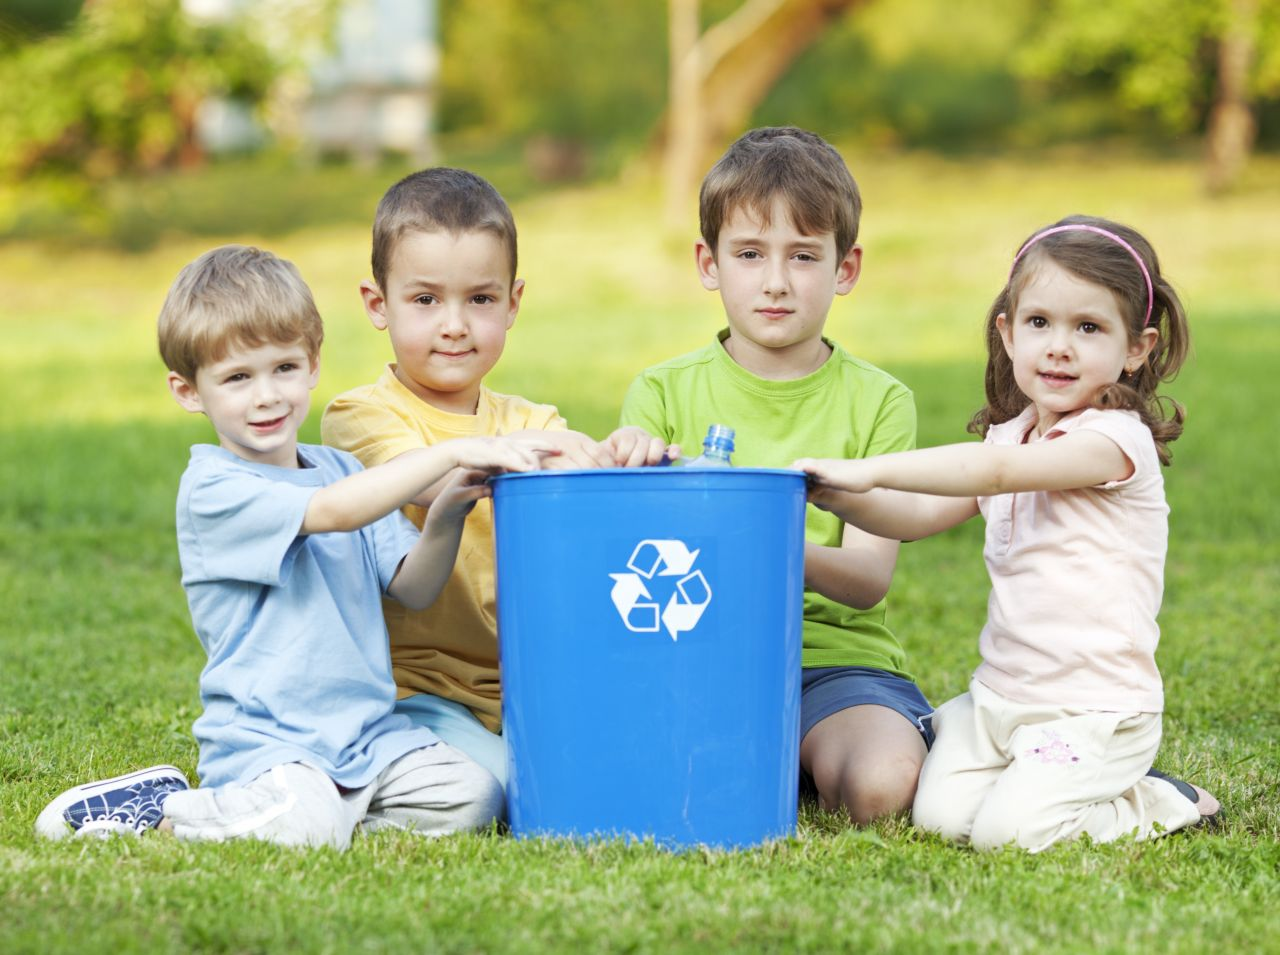 Teaching children to recycle, reduce and reuse